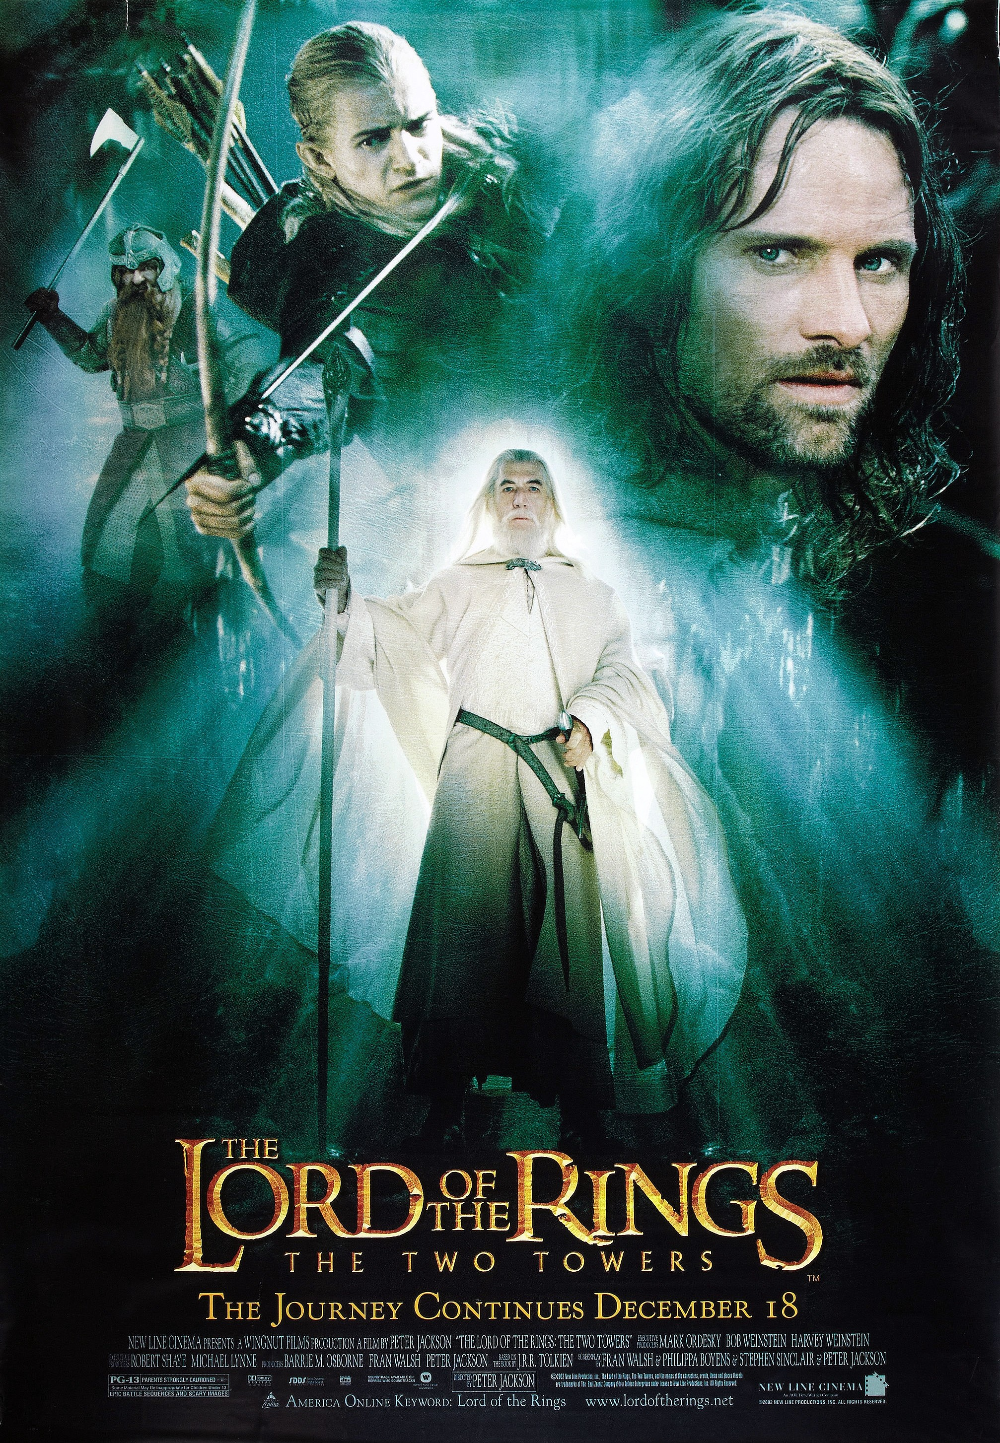 The Lord Of The Rings The Two Towers Poster 35 Full Size Poster Image Goldposter In 2021 Lord Of The Rings The Two Towers Good Movies